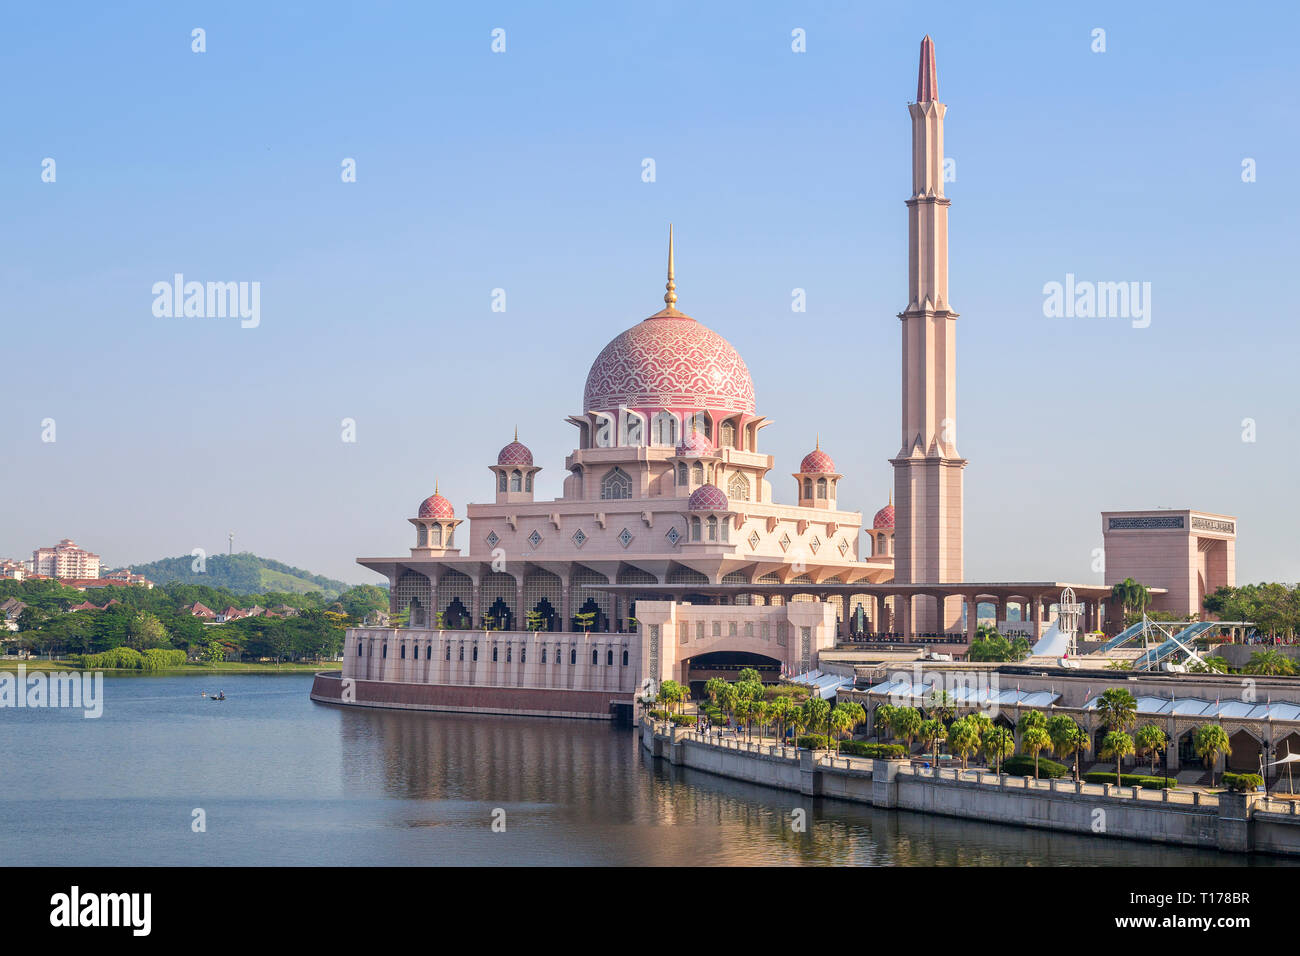 The view of Putra Mosque (Masjid Putra) located next to the Putra Square, is the most distinctive landmark in Putrajaya, Malaysia, surrounded by the b - Stock Image